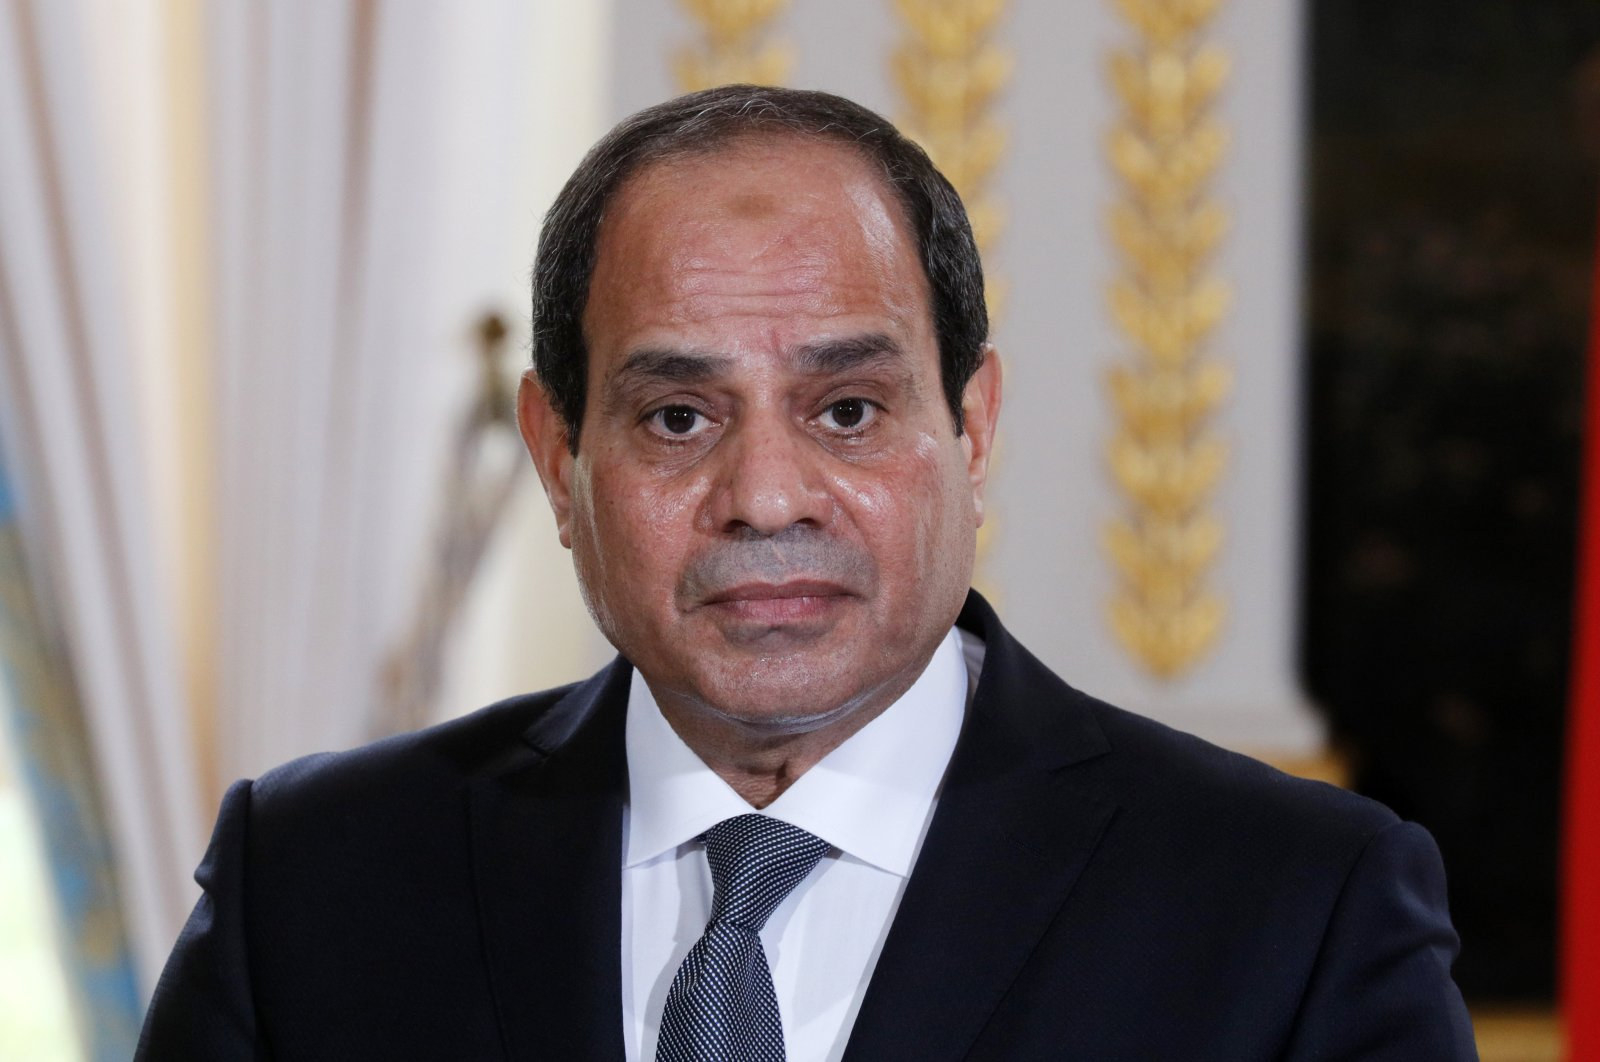 Abdel Fattah el-Sissi attends a news conference with French President Emmanuel Macron (not pictured) at the Elysee Palace, in Paris, France, 24 October 2017. (EPA Photo)